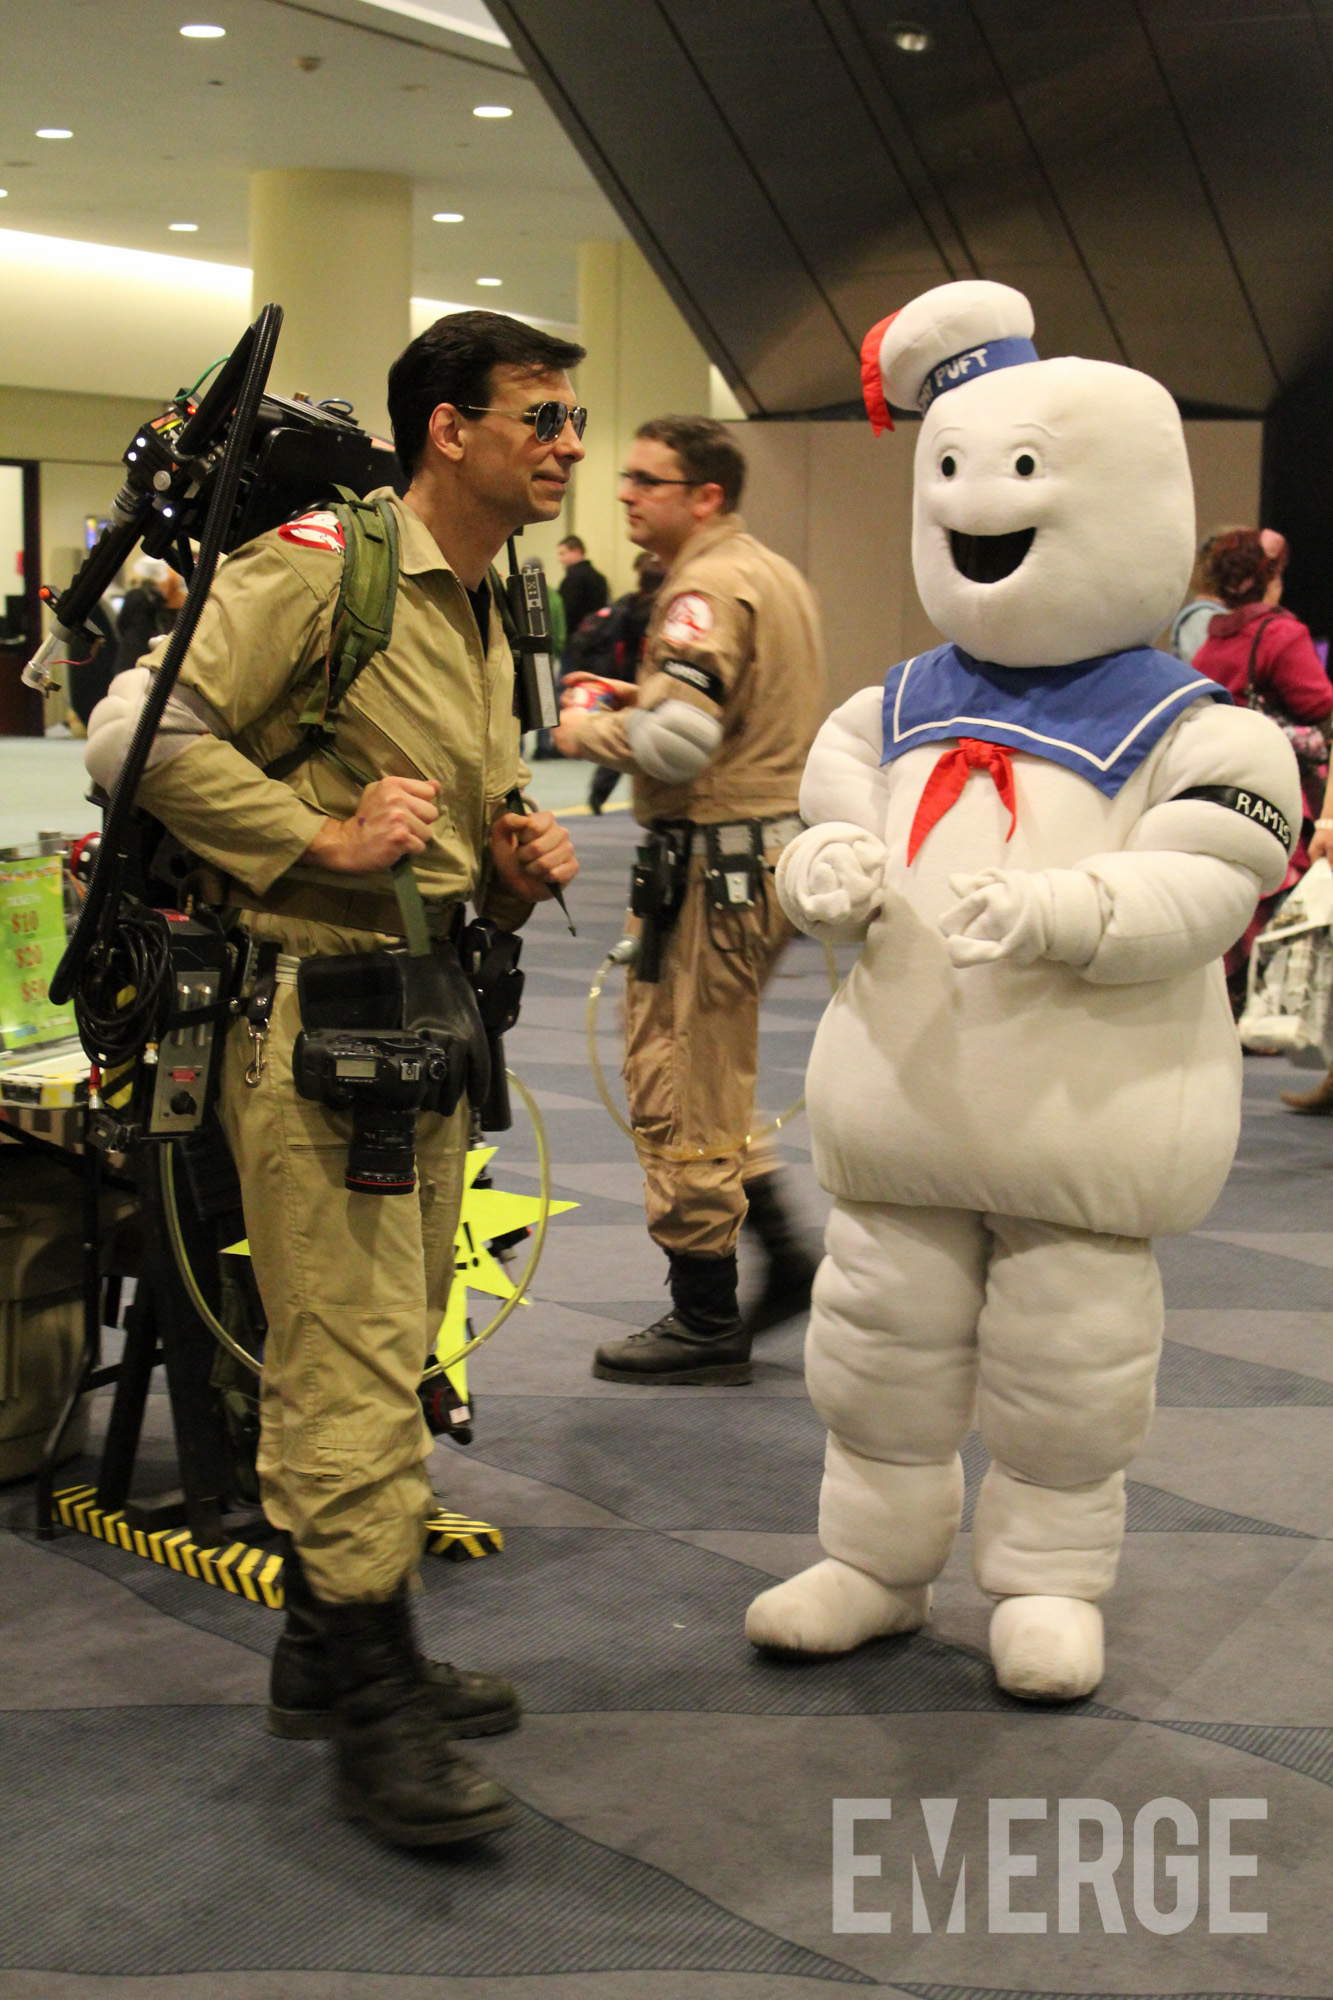 Moments before the Stay Puft Marshmallow man went on a rampage in New York, I wonder what the Ghost Busters said?